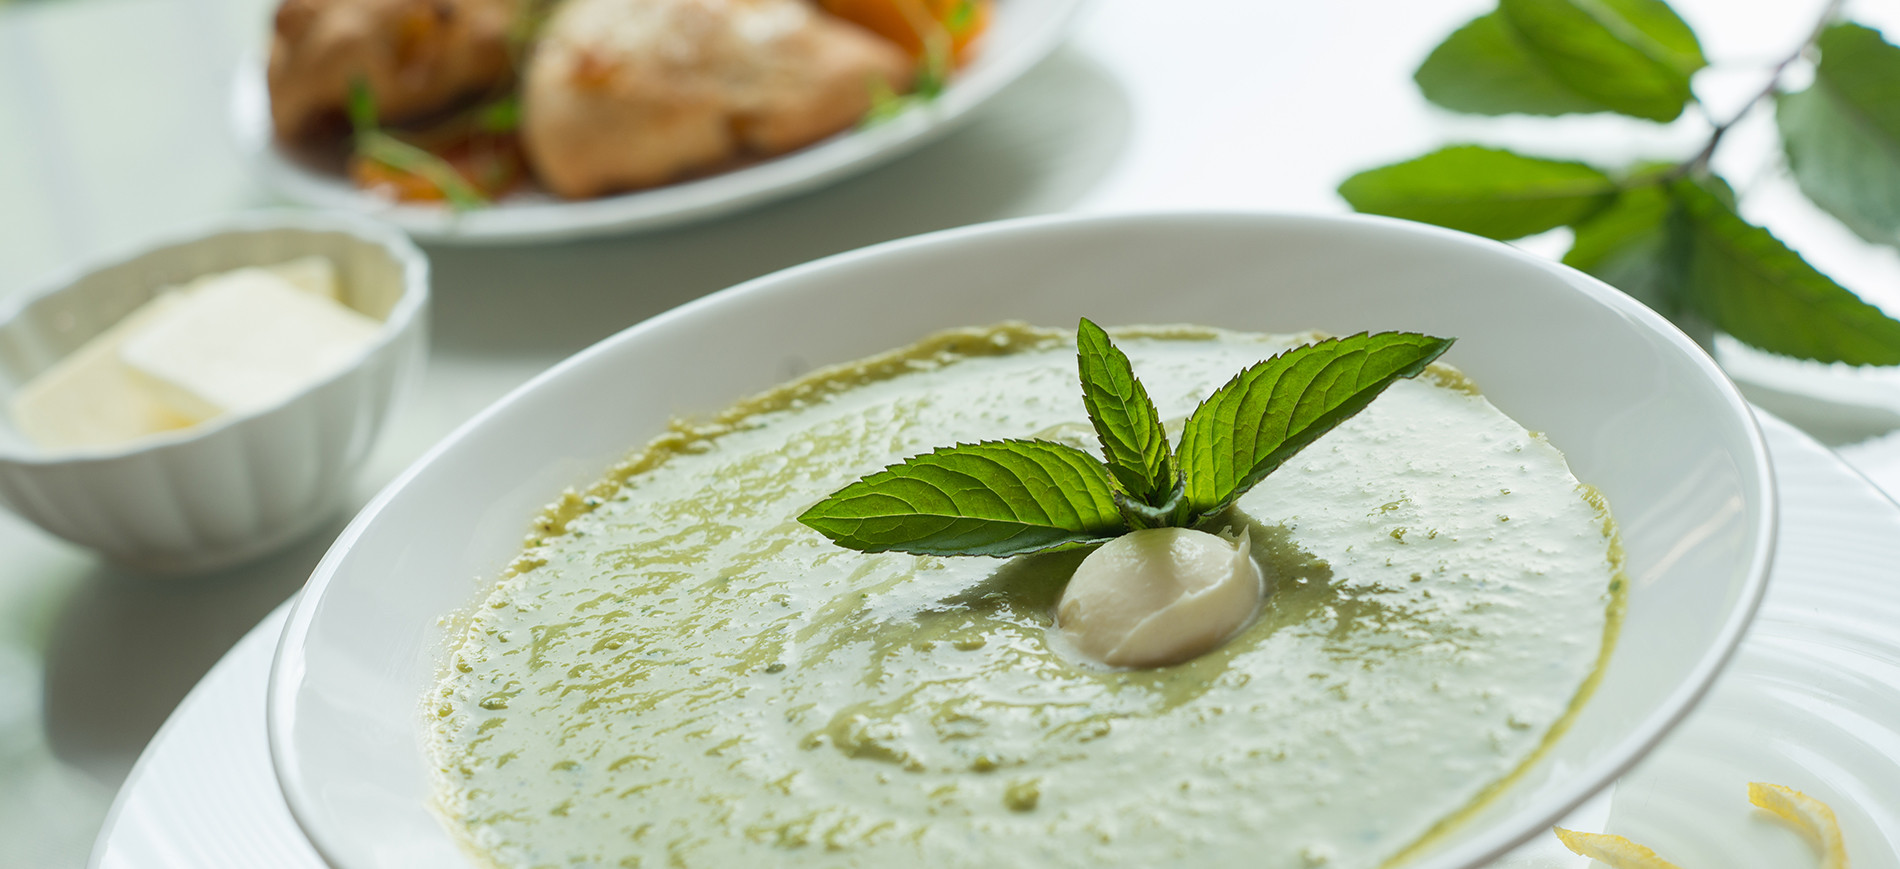 white bowl of pea soup garnished with mint